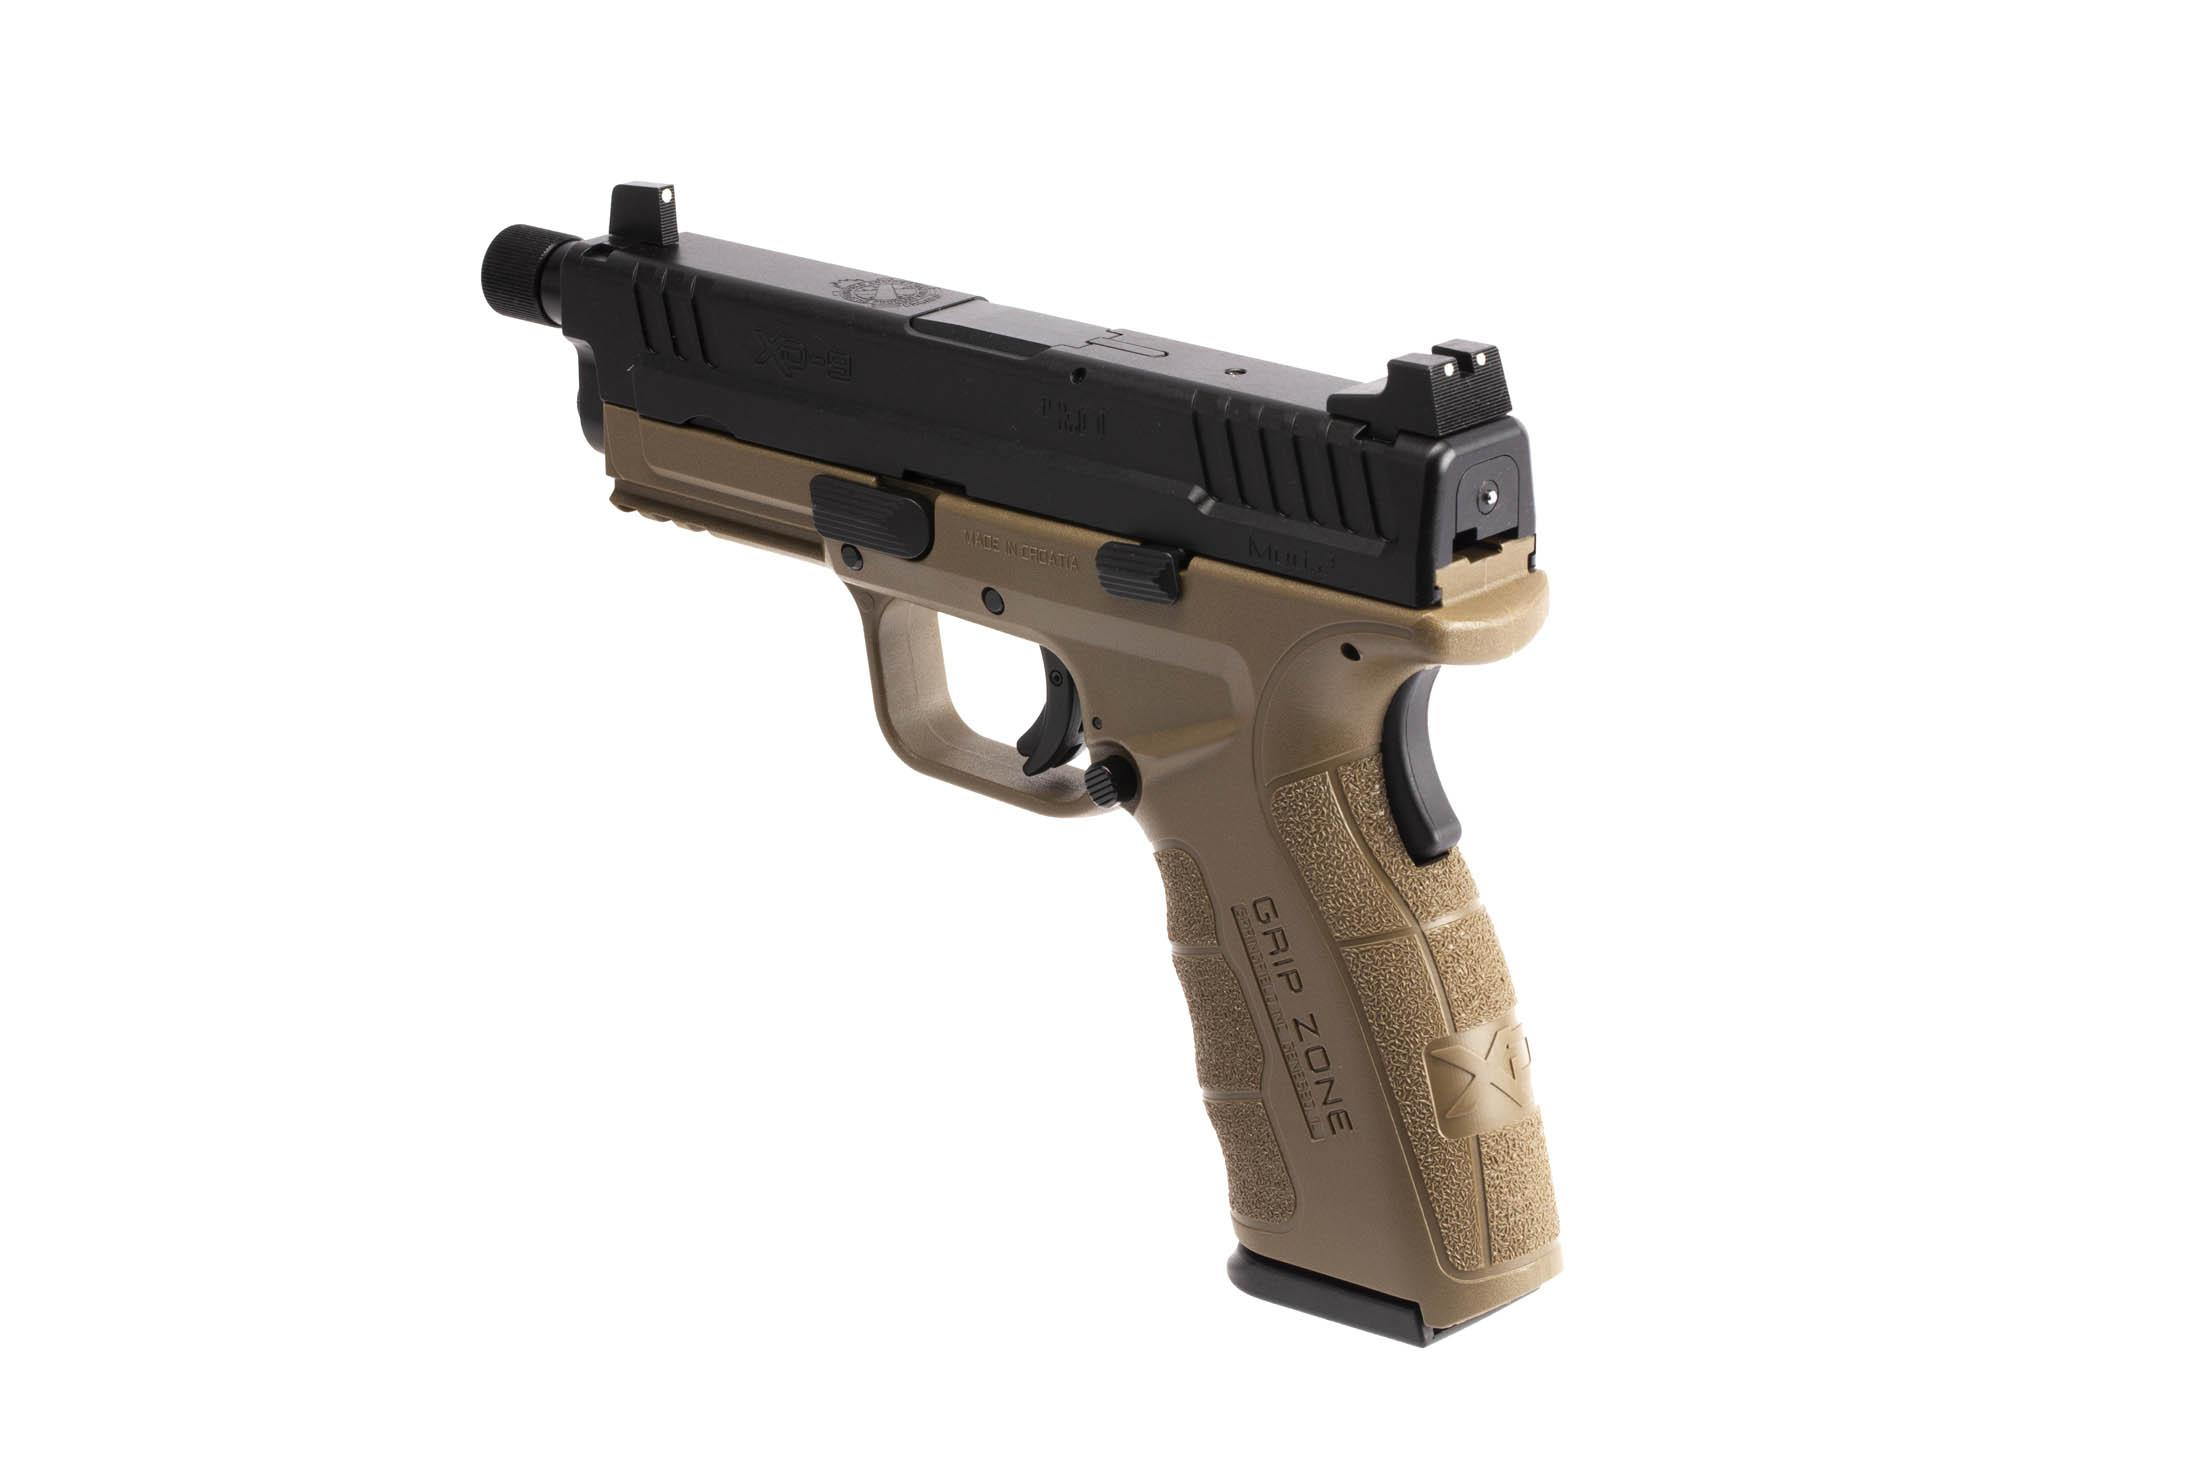 The Springfield Armory XD MOD.2 is a 9mm Full Size 16 round Handgun with fully ambidextrous controls